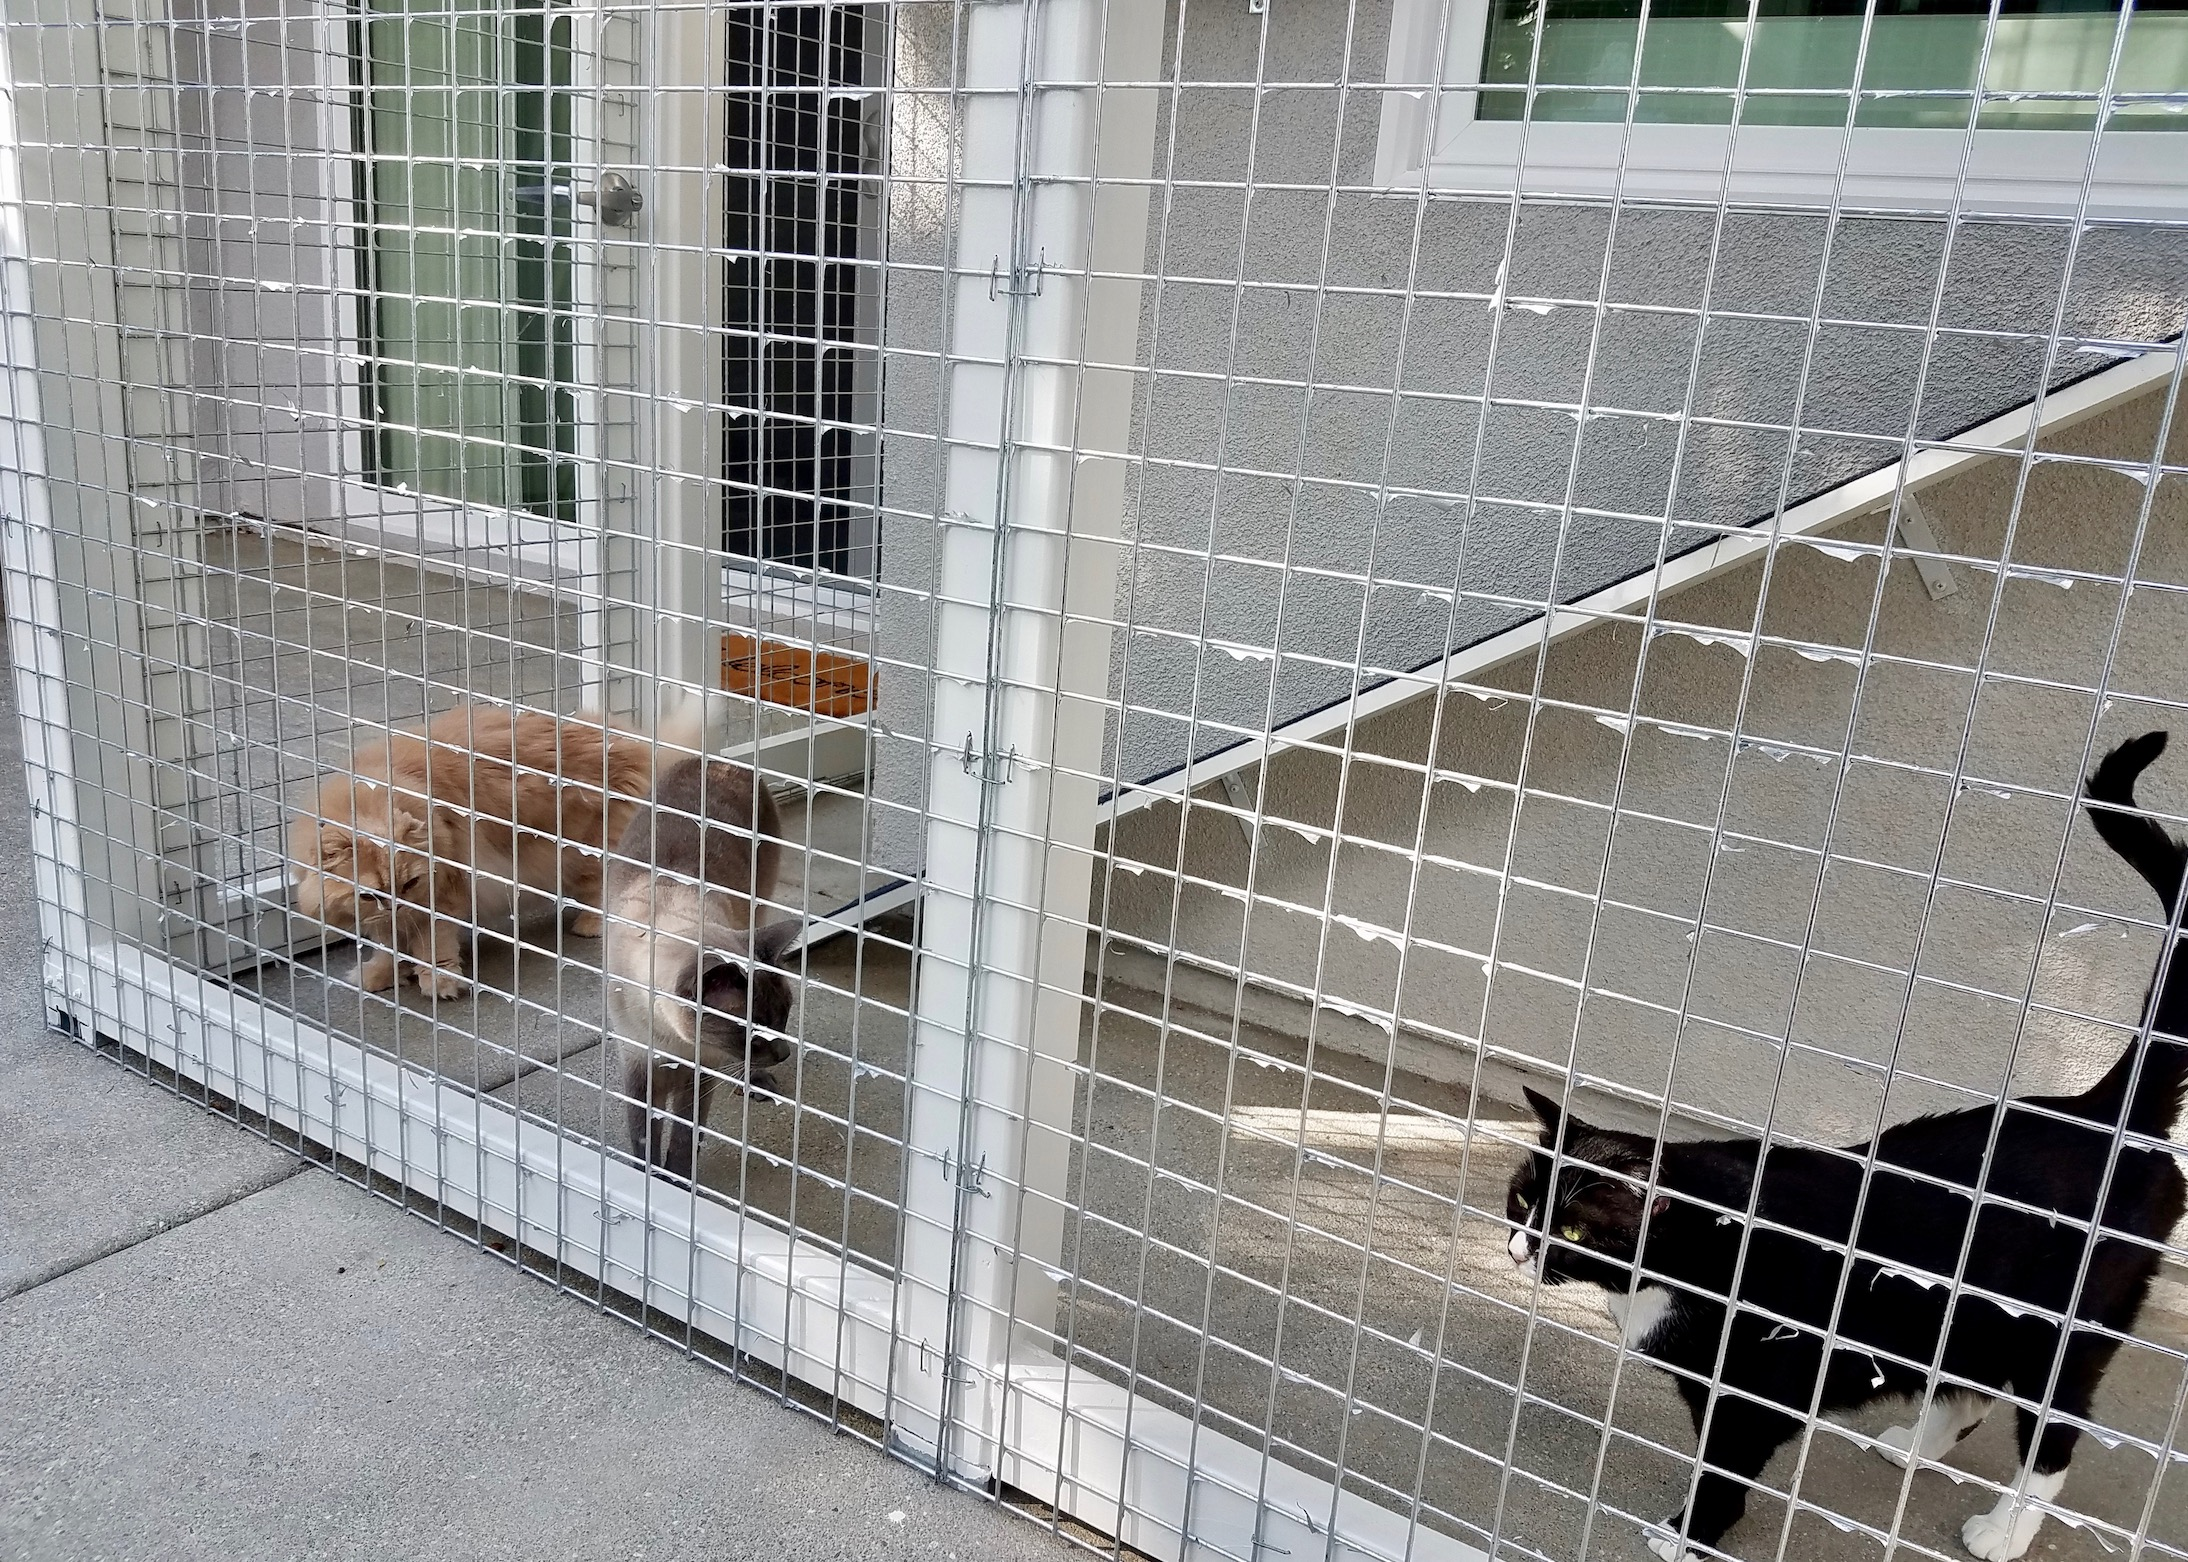 Placentia Catio Enclosure Cats